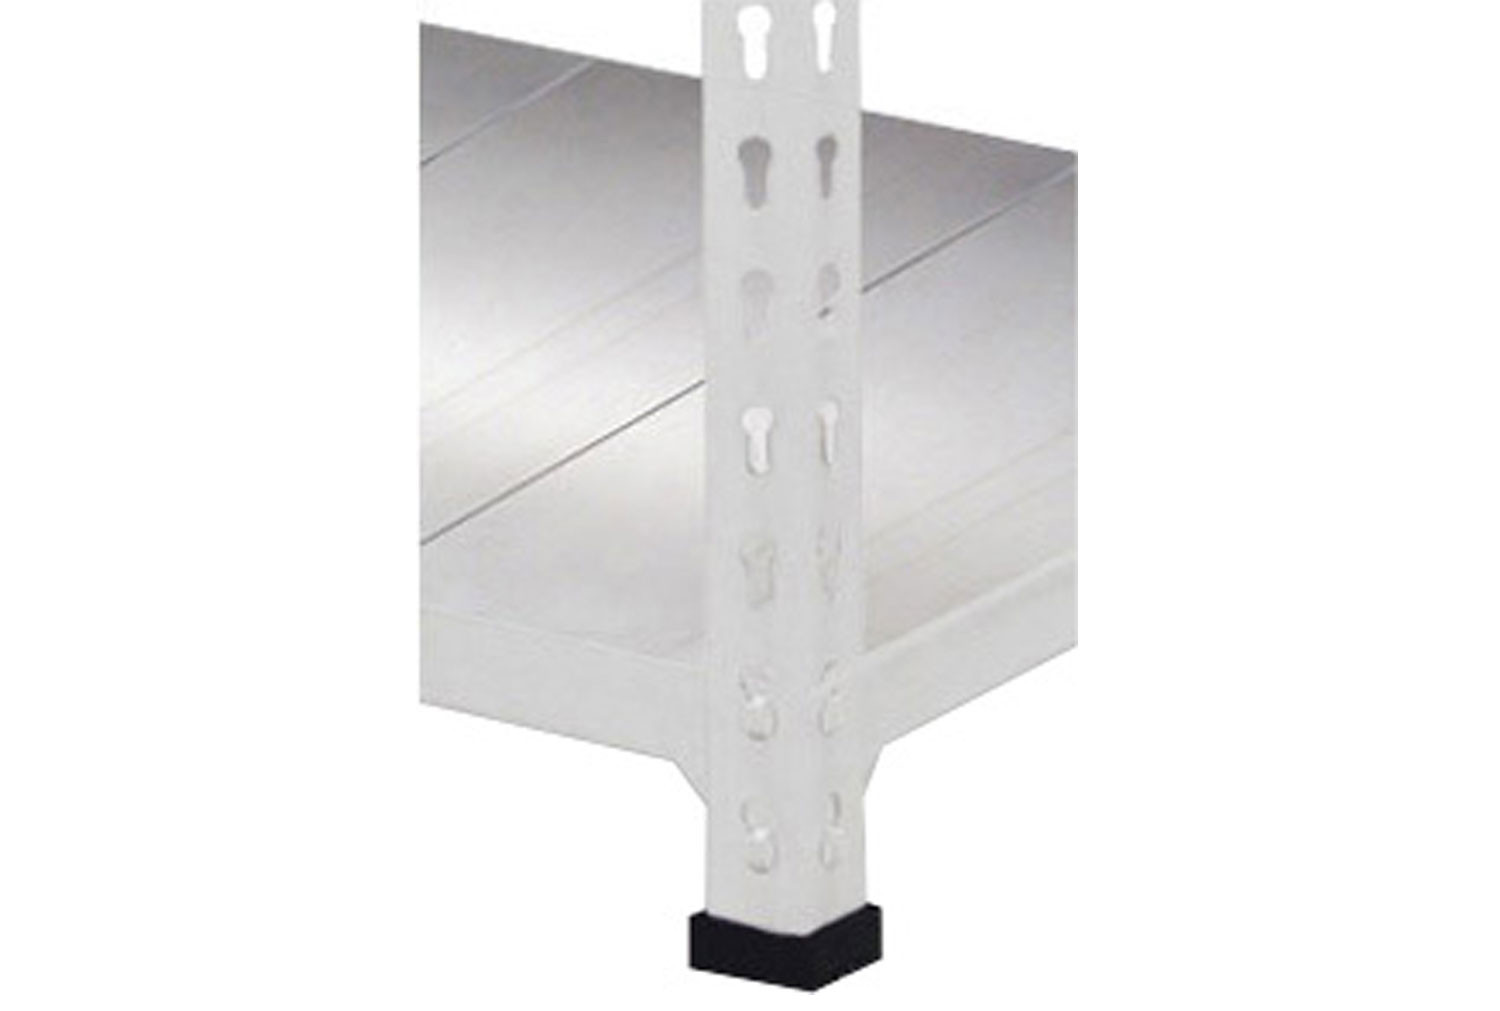 Rapid 2 Galvanized Steel Shelf (Grey)